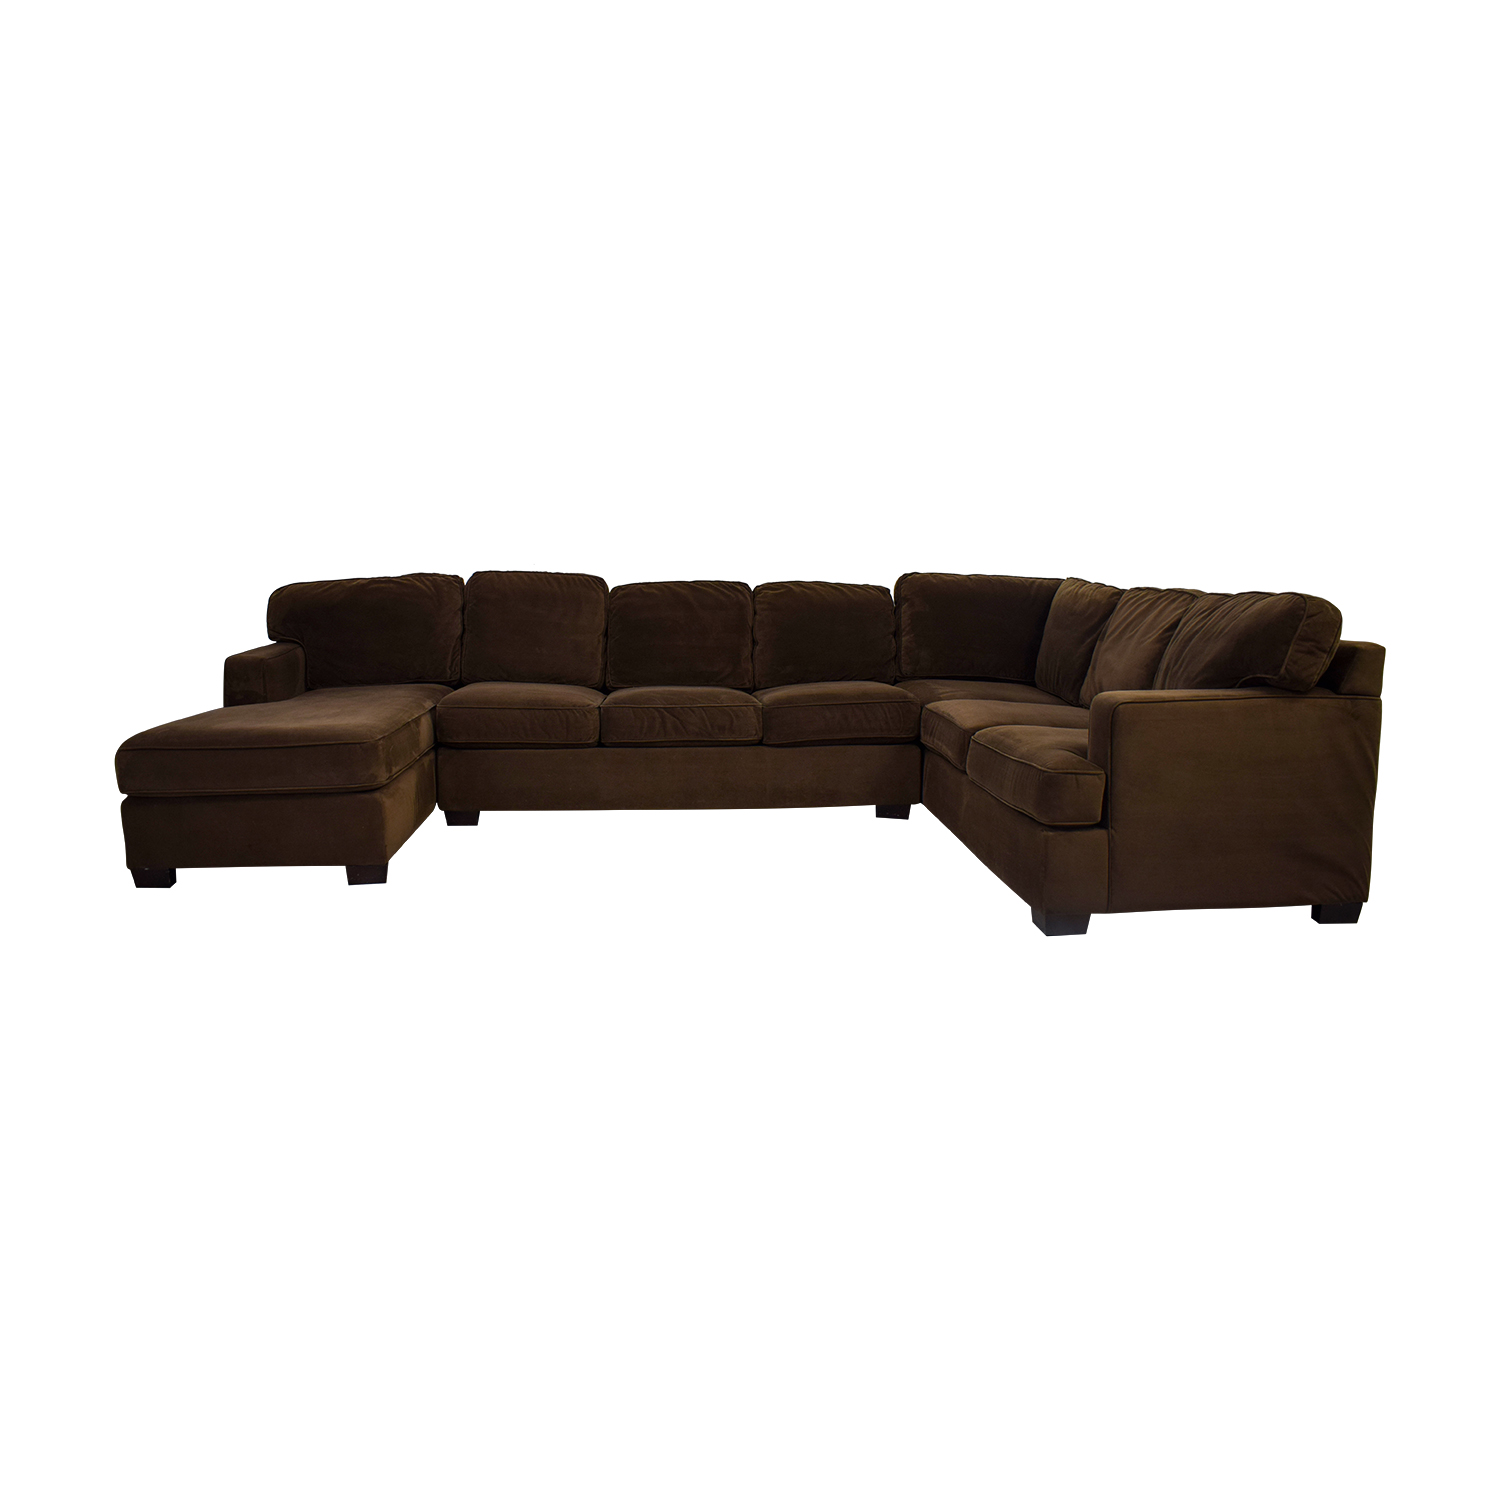 Bloomingdale's Bloomingdale's Brown Microsuede L-Shaped Chaise Sectional price